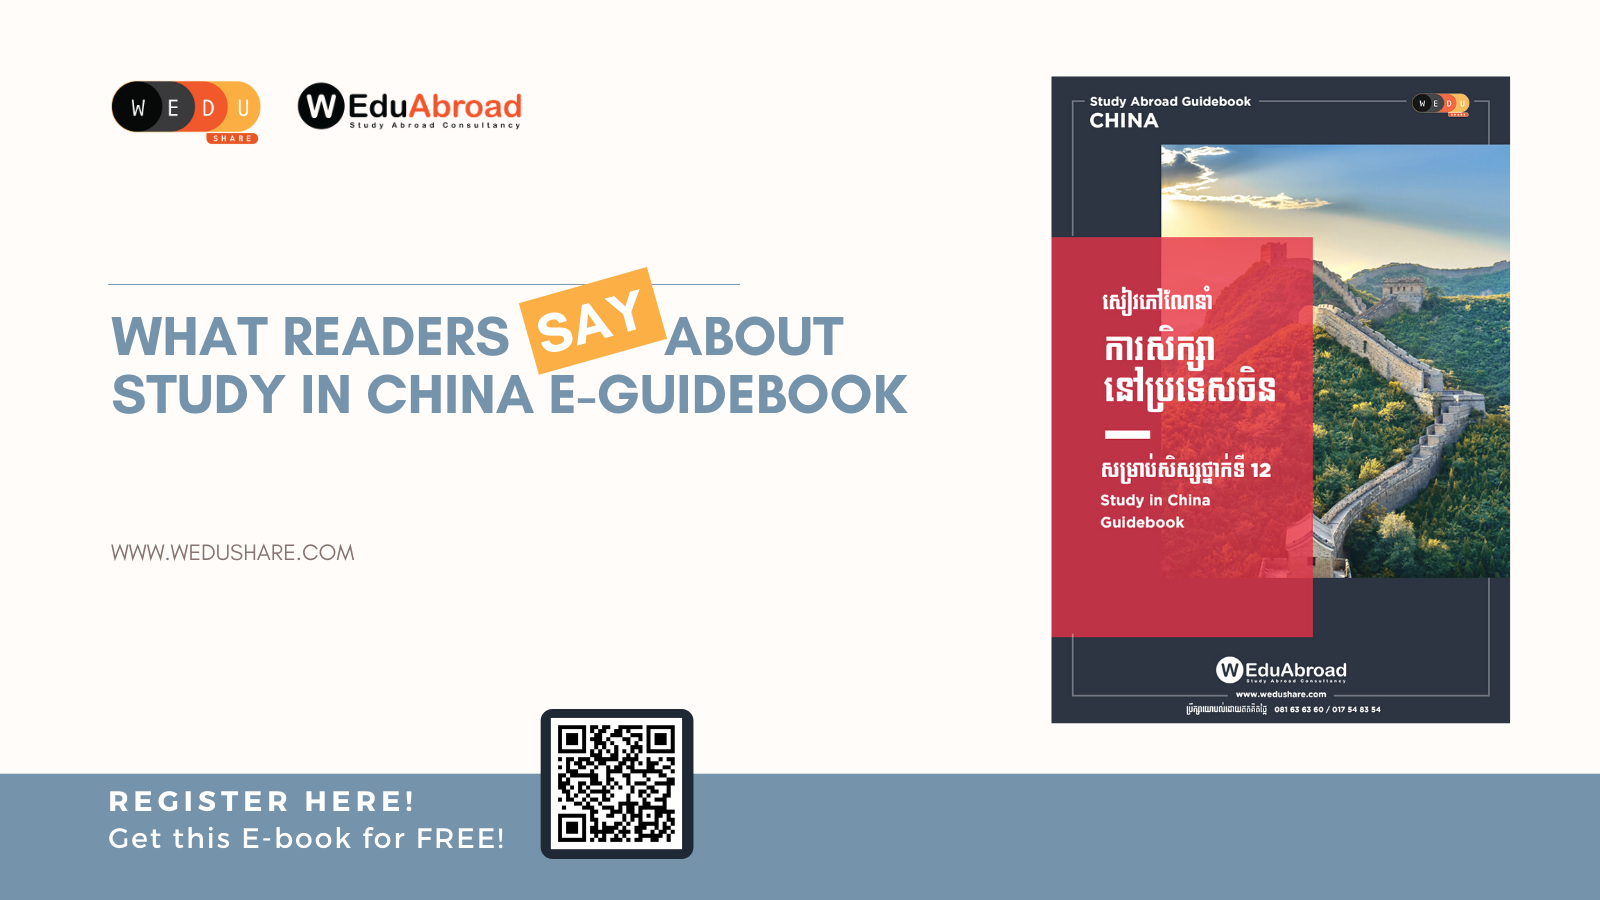 What Readers Say About Study in China E-Guidebook?